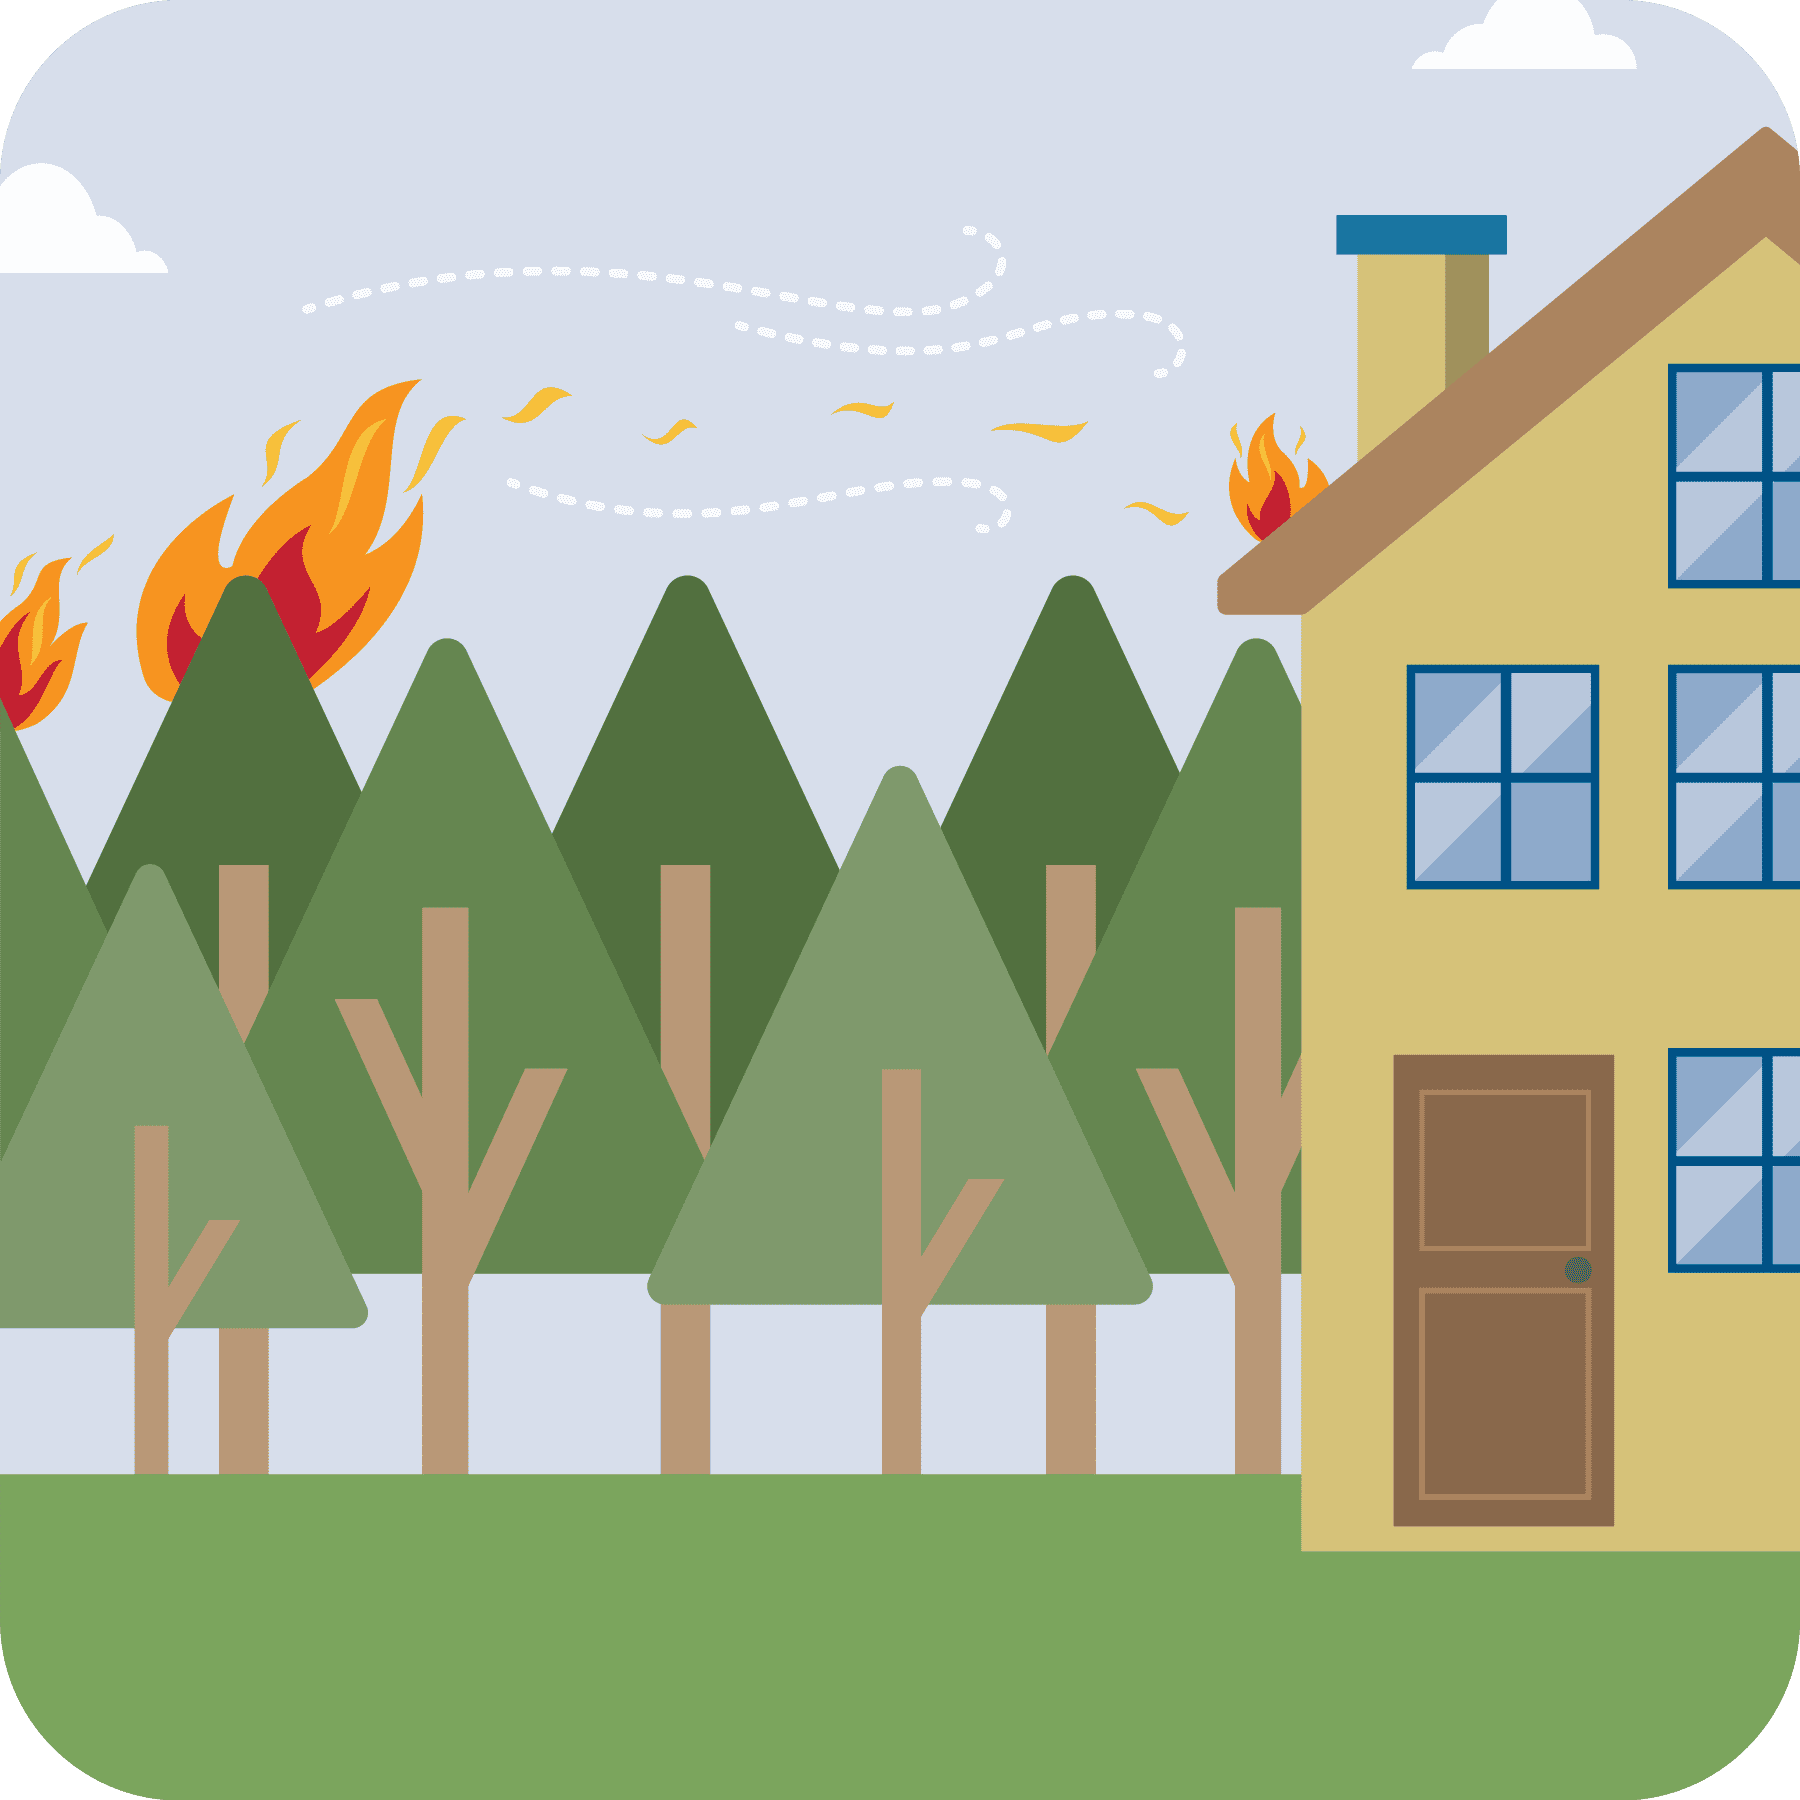 This pictograph shows embers from trees blowing onto a house roof.